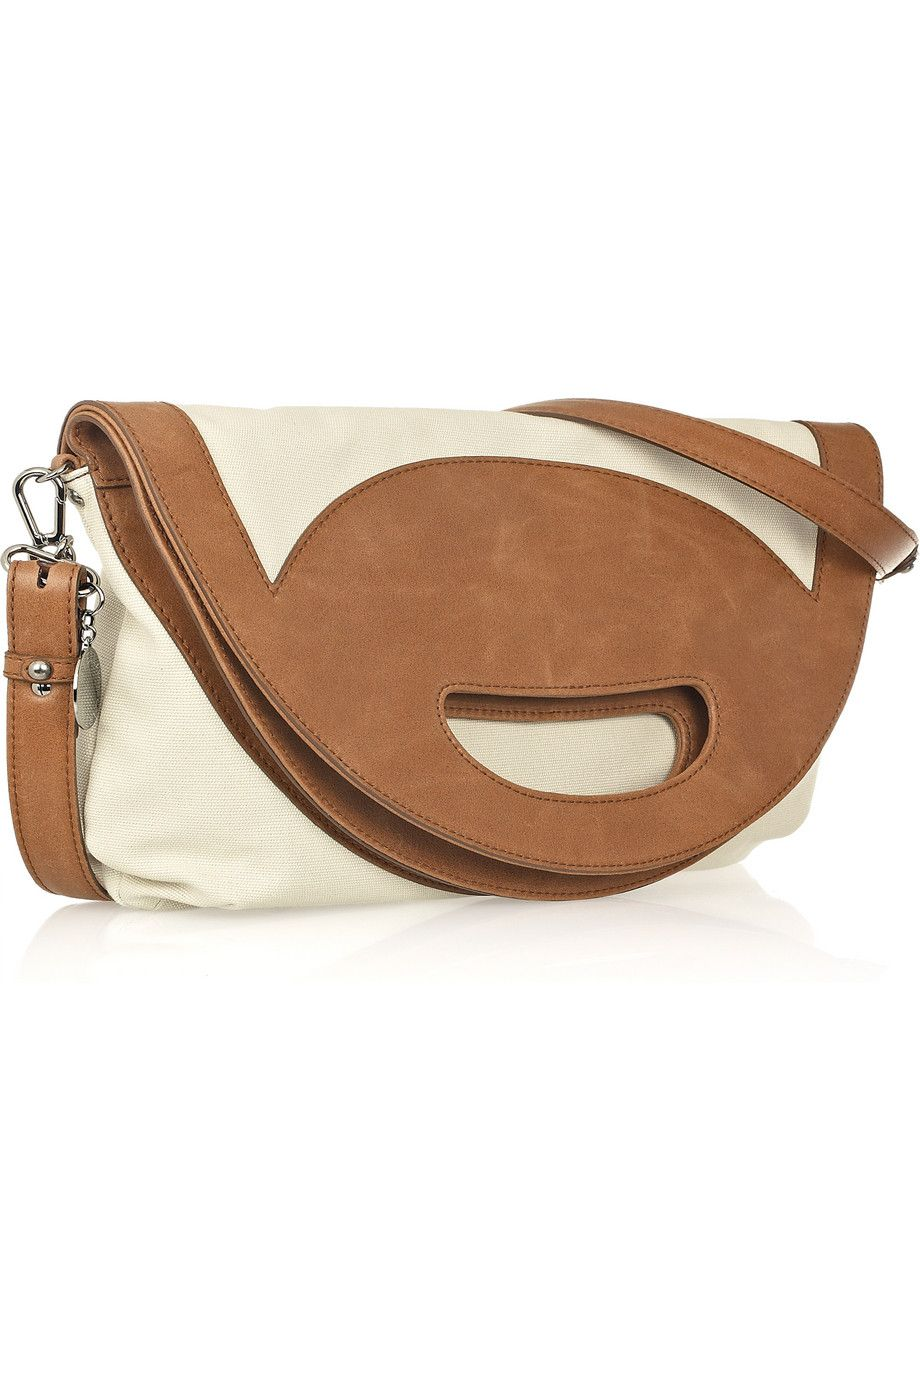 Not sure why this Stella McCartney bag is $1125 when it's made of faux leather, but it's adorable.